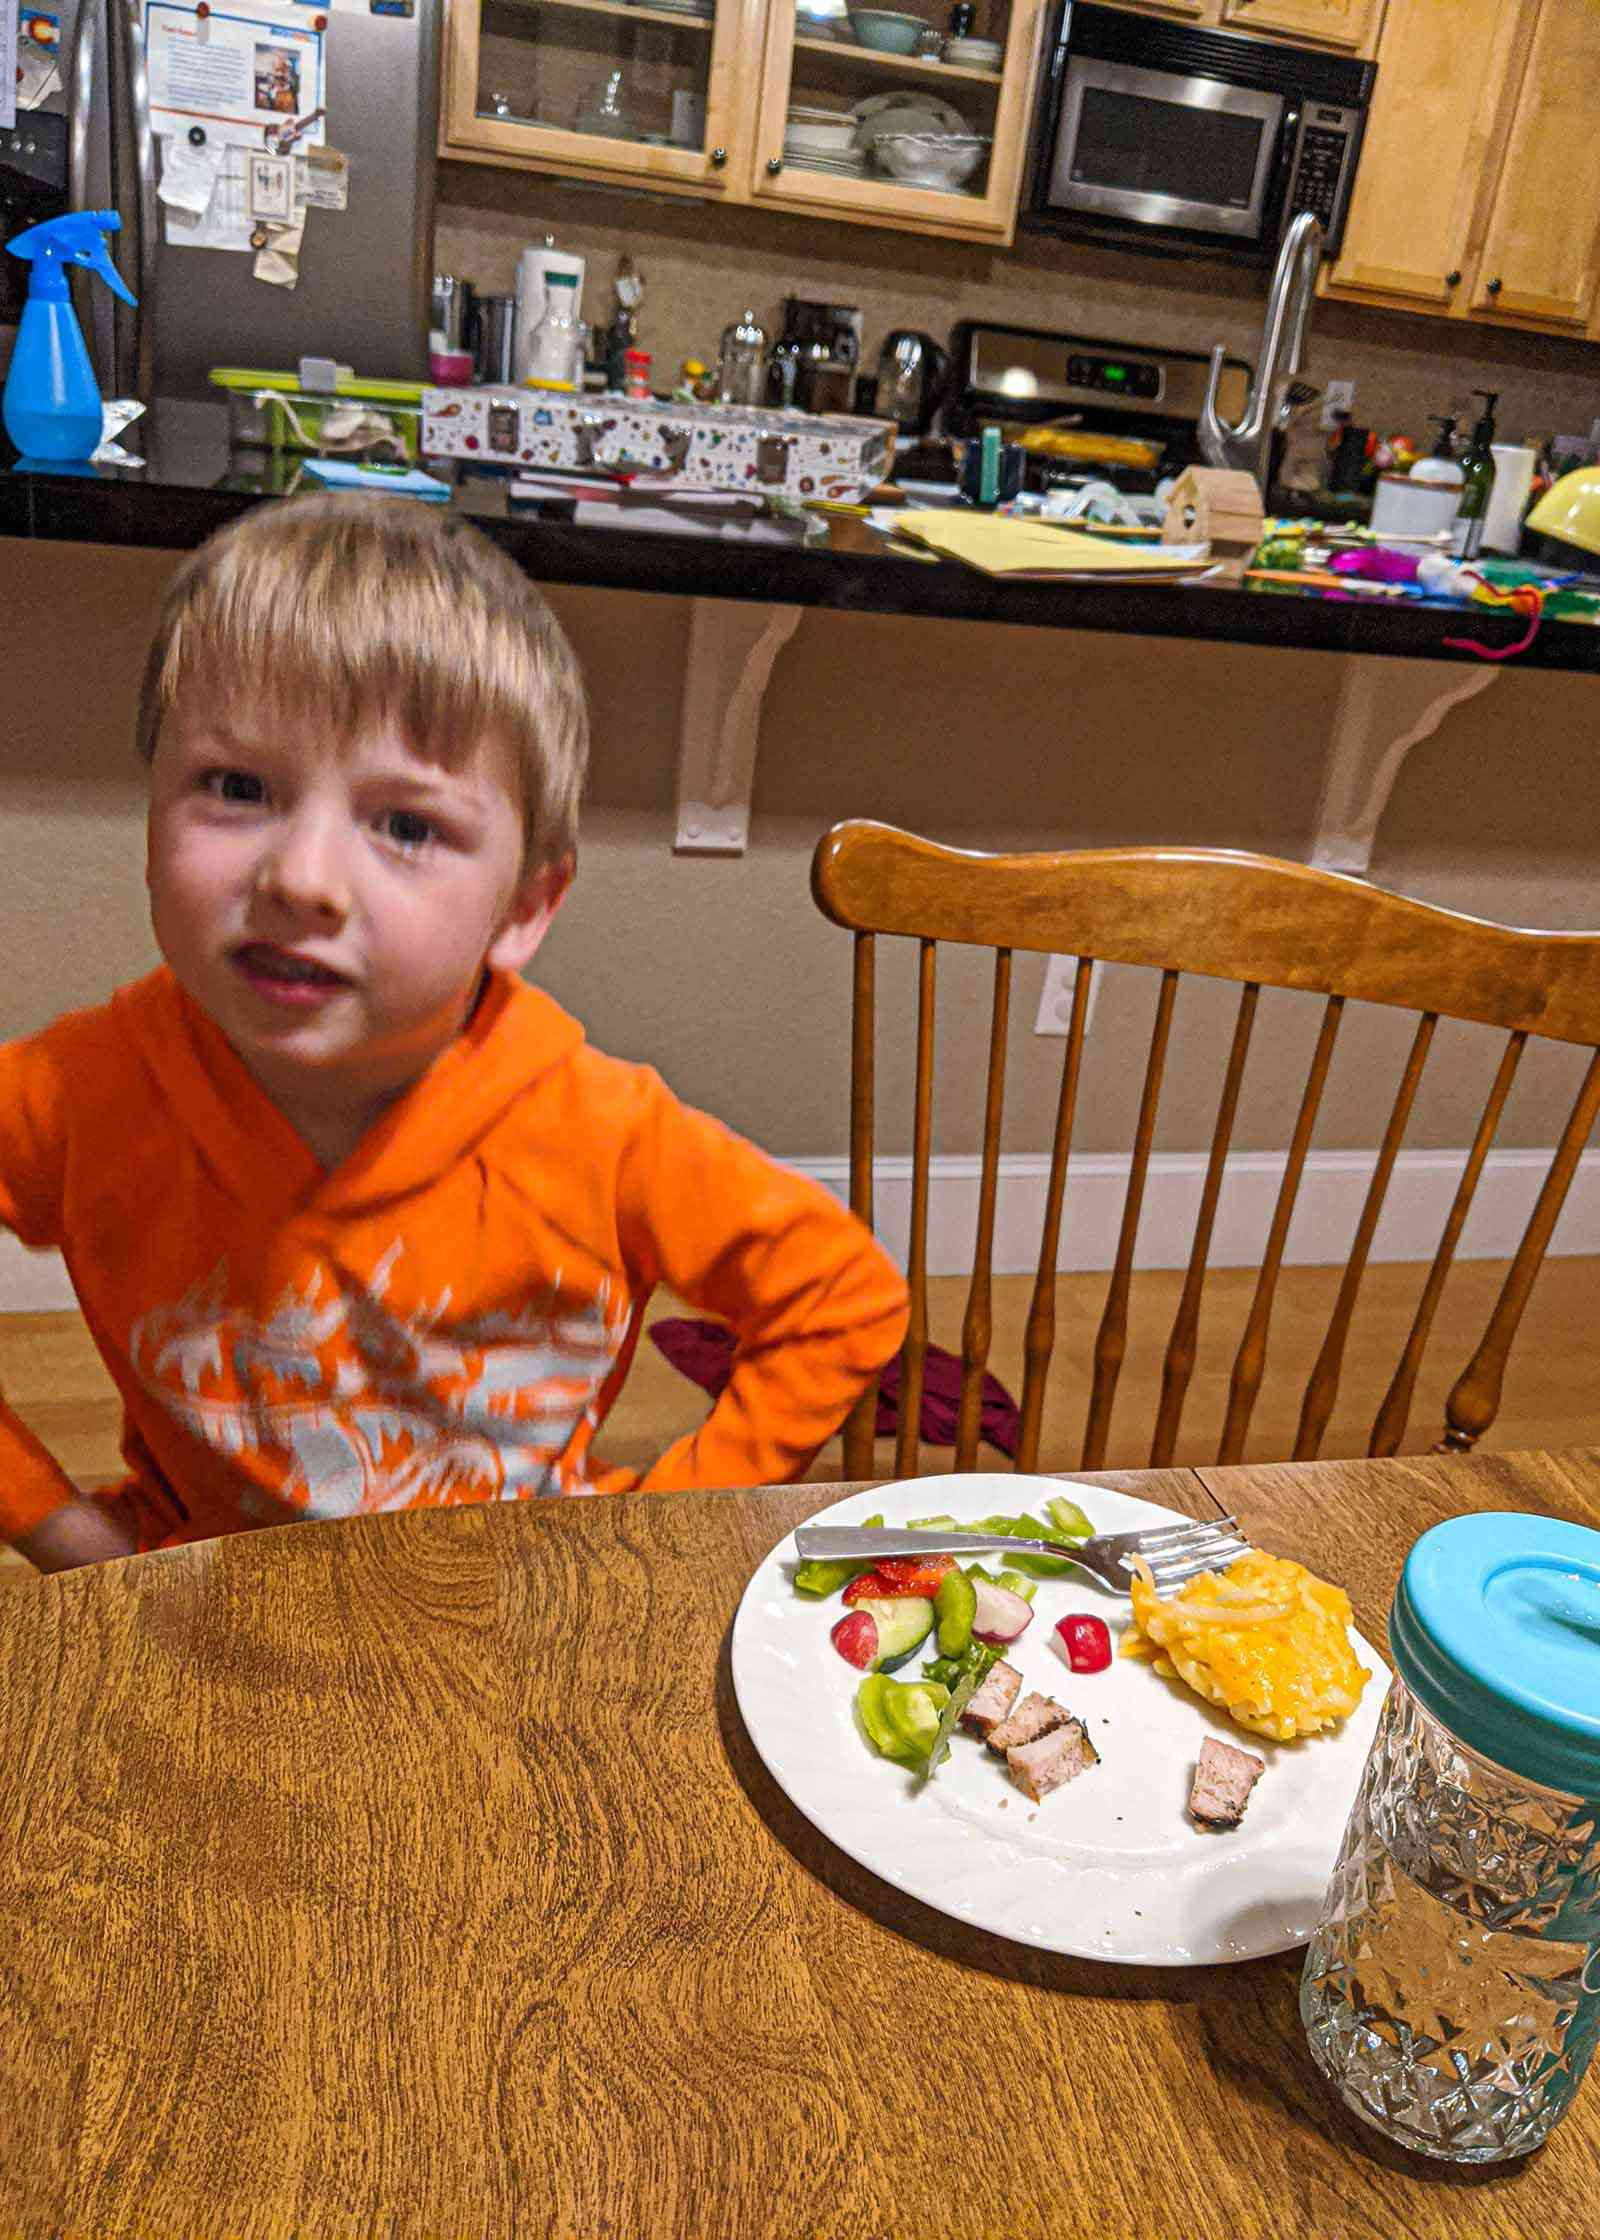 Preschool boy sitting at the kitchen table with a white plate of food in front of him The plate has a scoop of cheesy funeral potatoes, chopped ham, a salad and a fork. The kitchen is in the background of the picture.